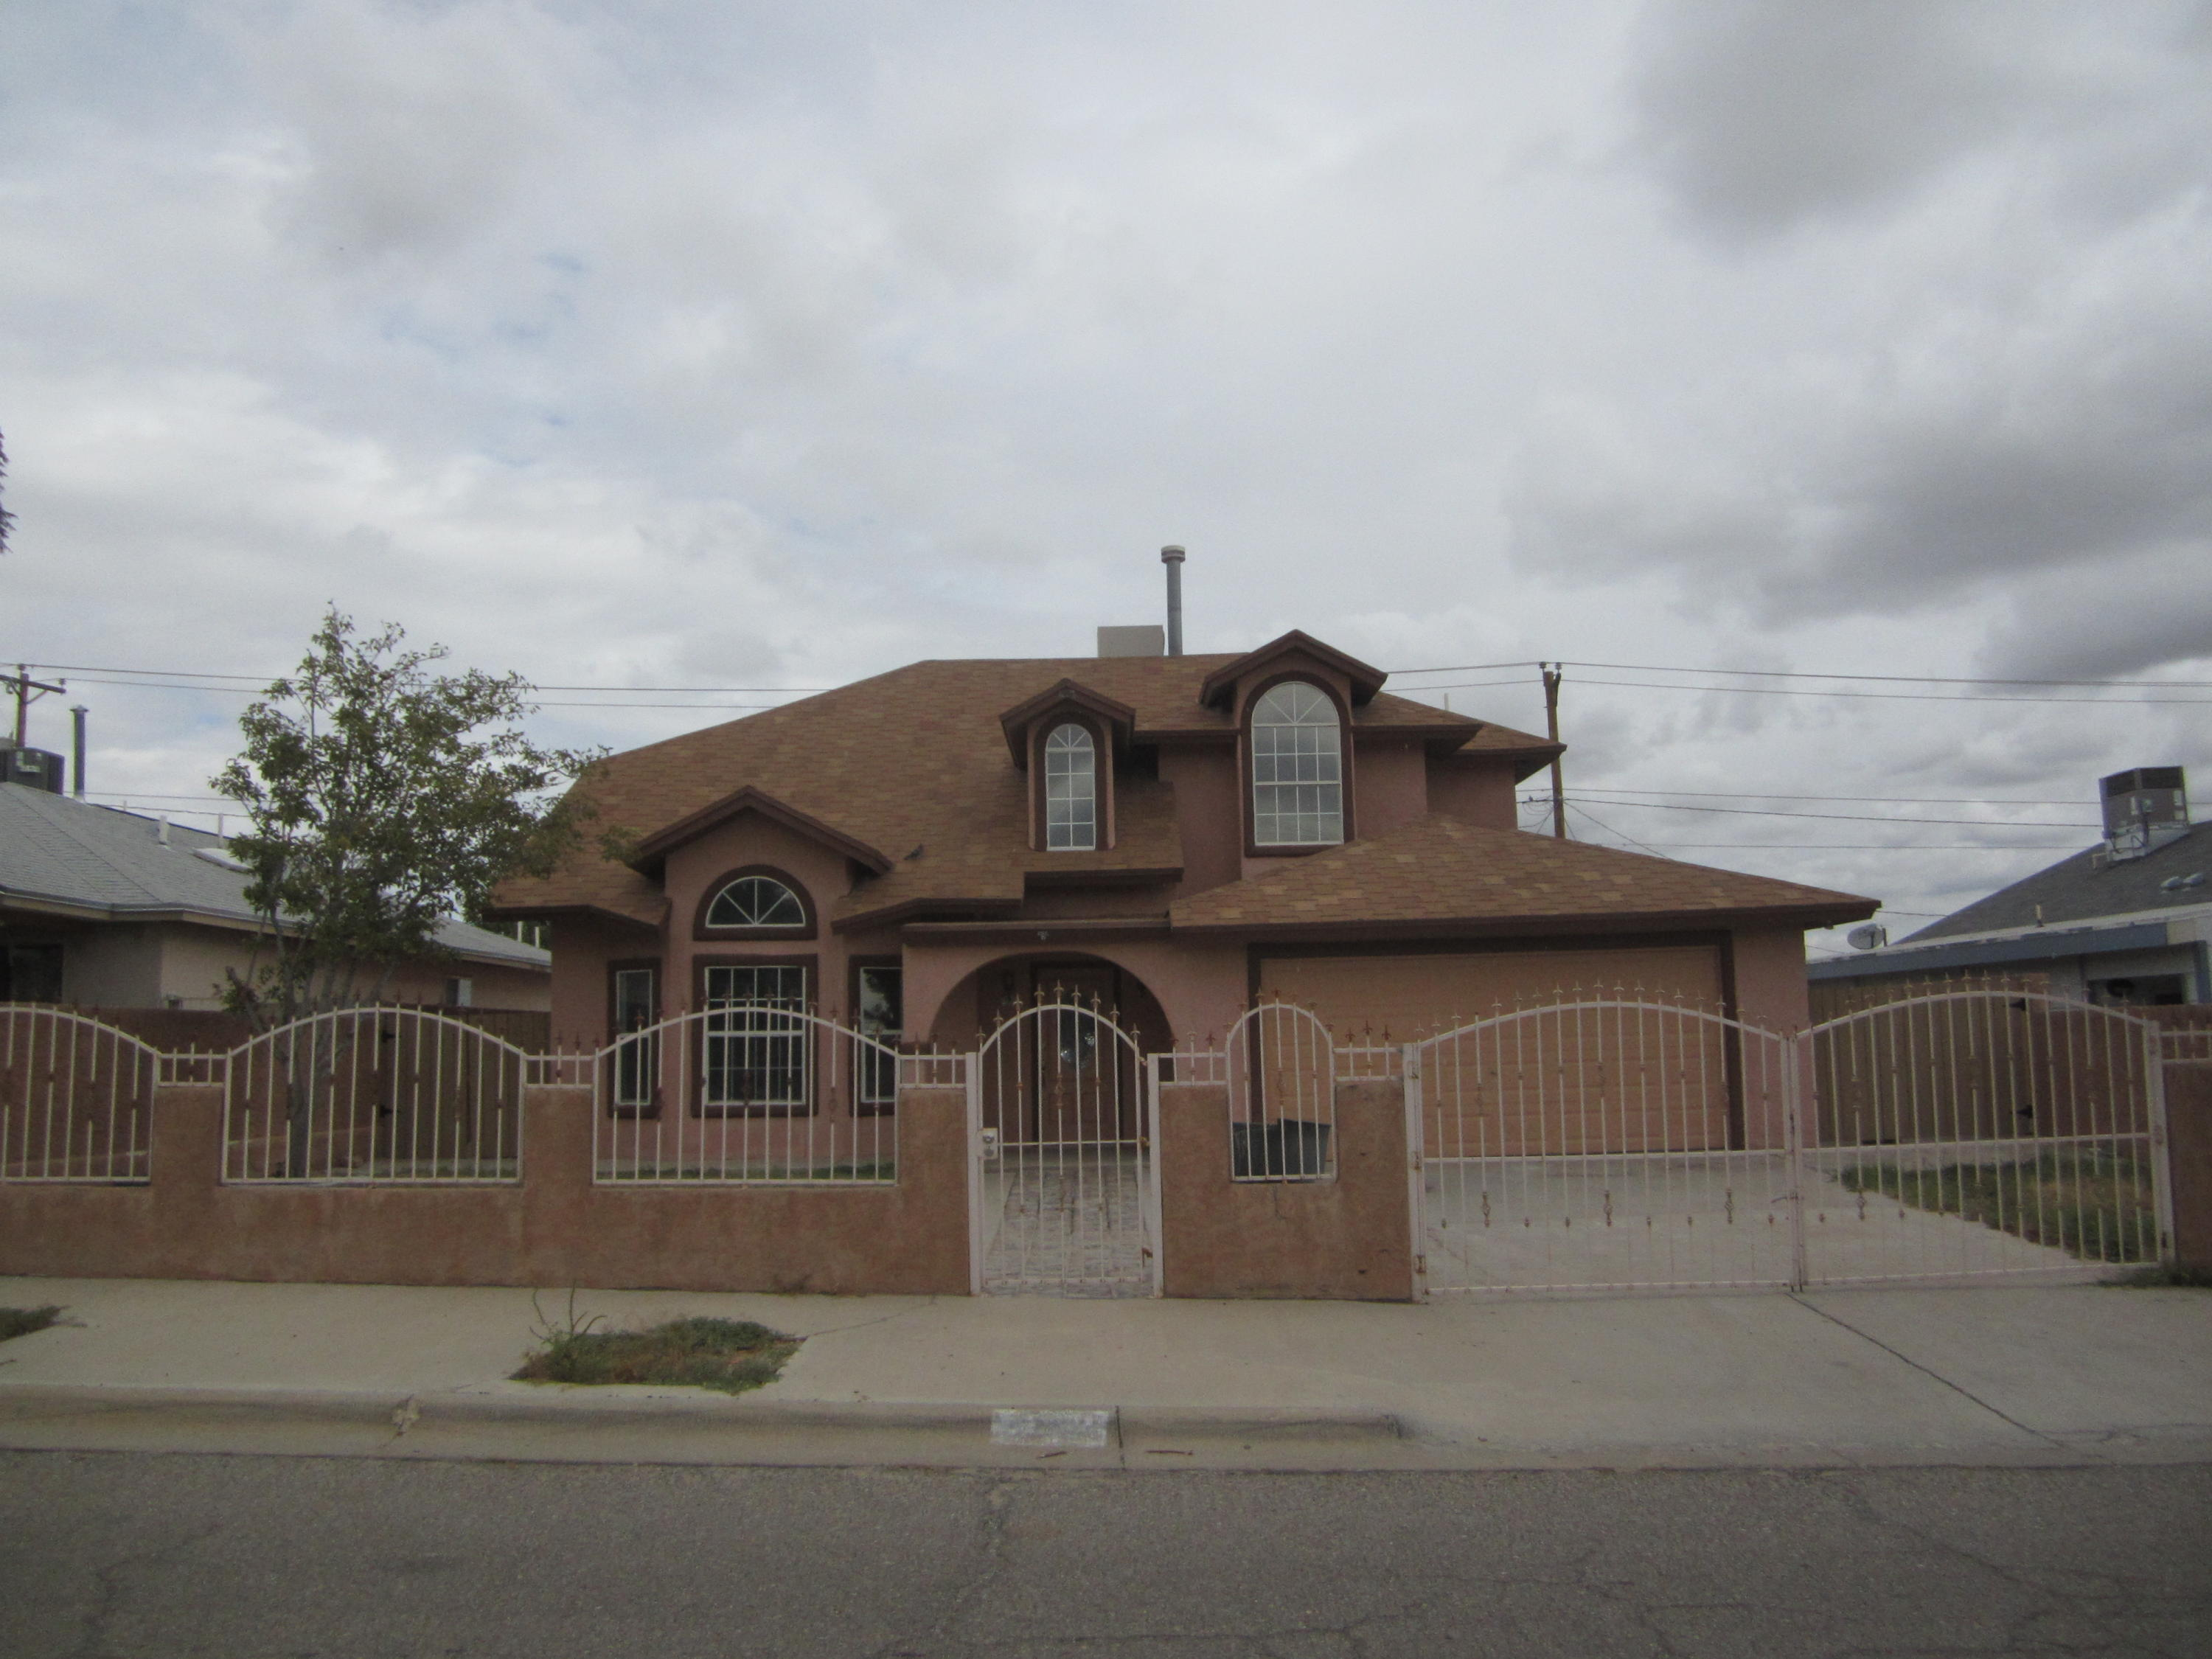 190 Aspen, Sunland Park, New Mexico 88063, 3 Bedrooms Bedrooms, ,3 BathroomsBathrooms,Residential,For sale,Aspen,817205